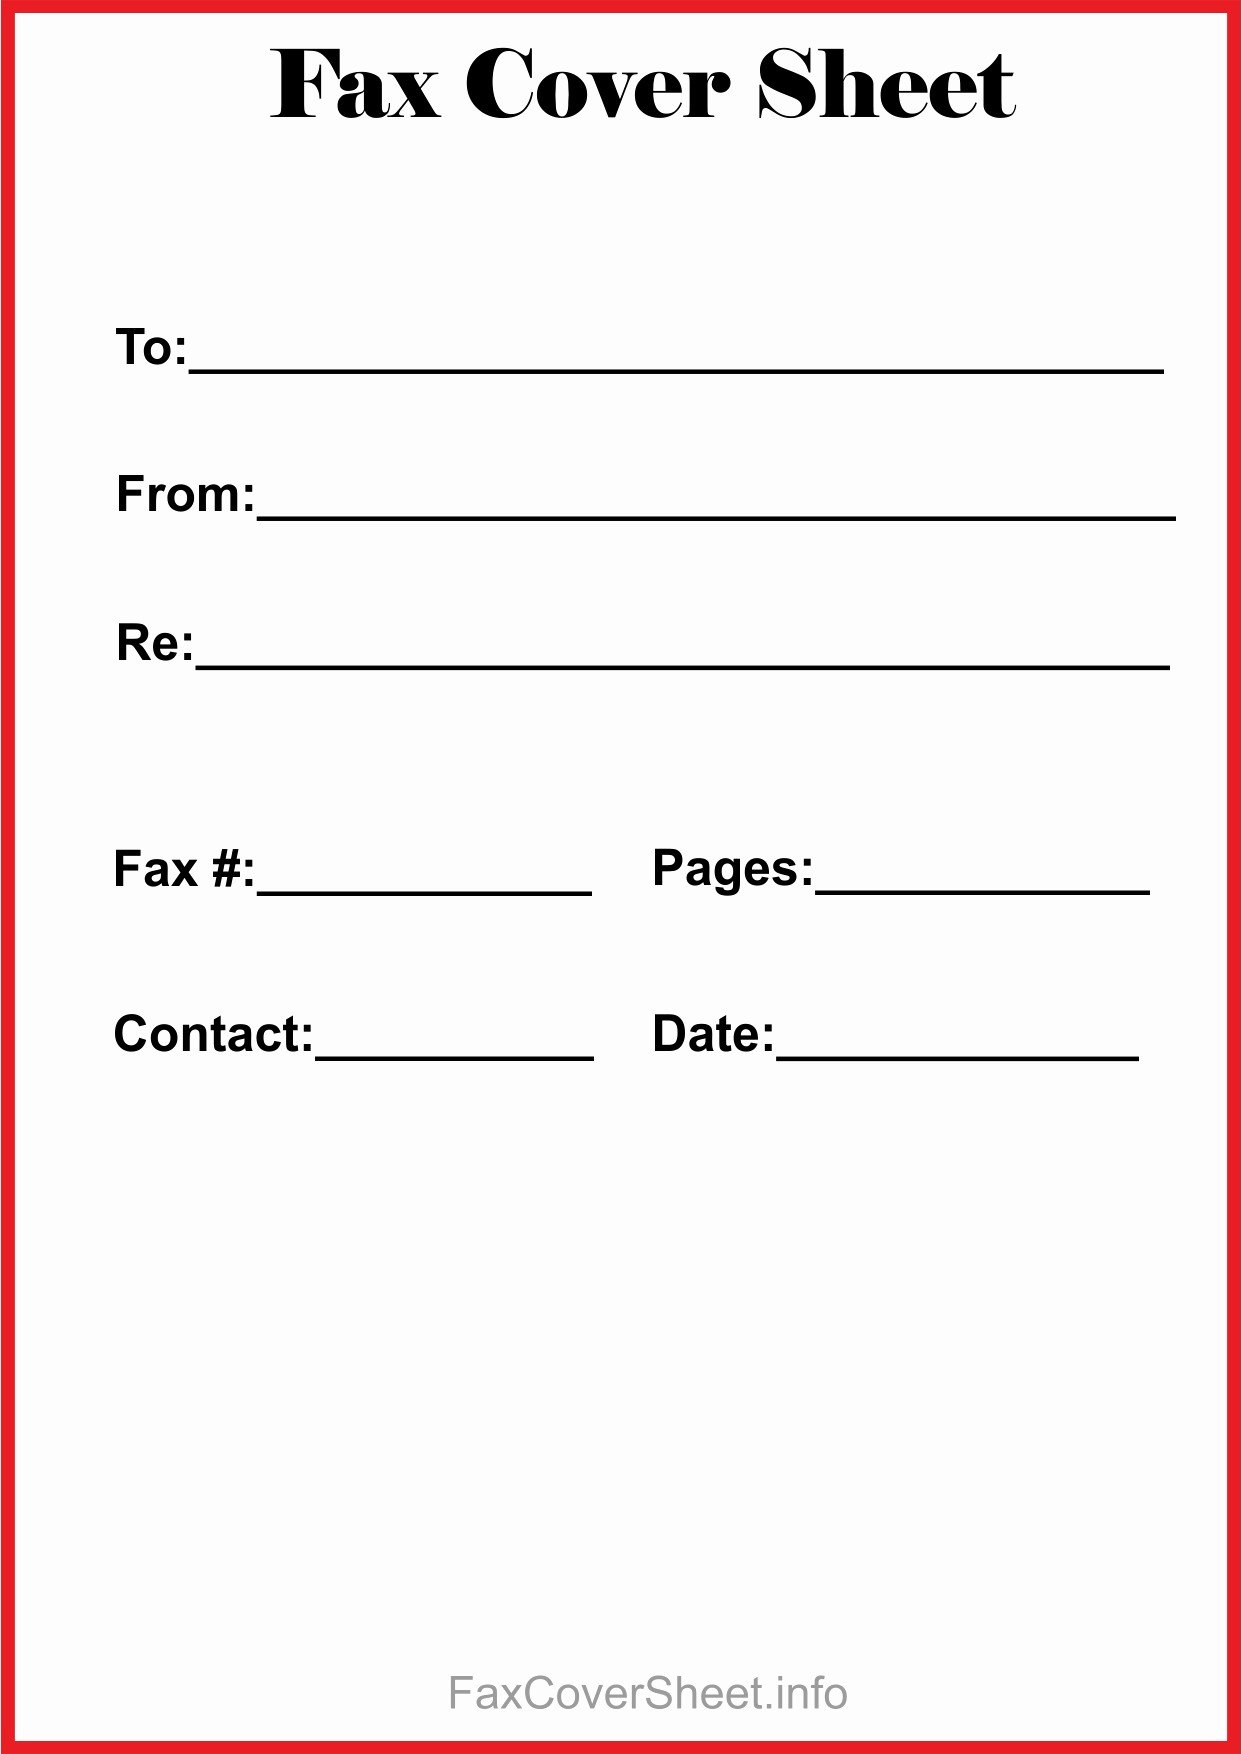 Free Fax Cover Sheets Template Unique Free Fax Cover Sheet Template Download